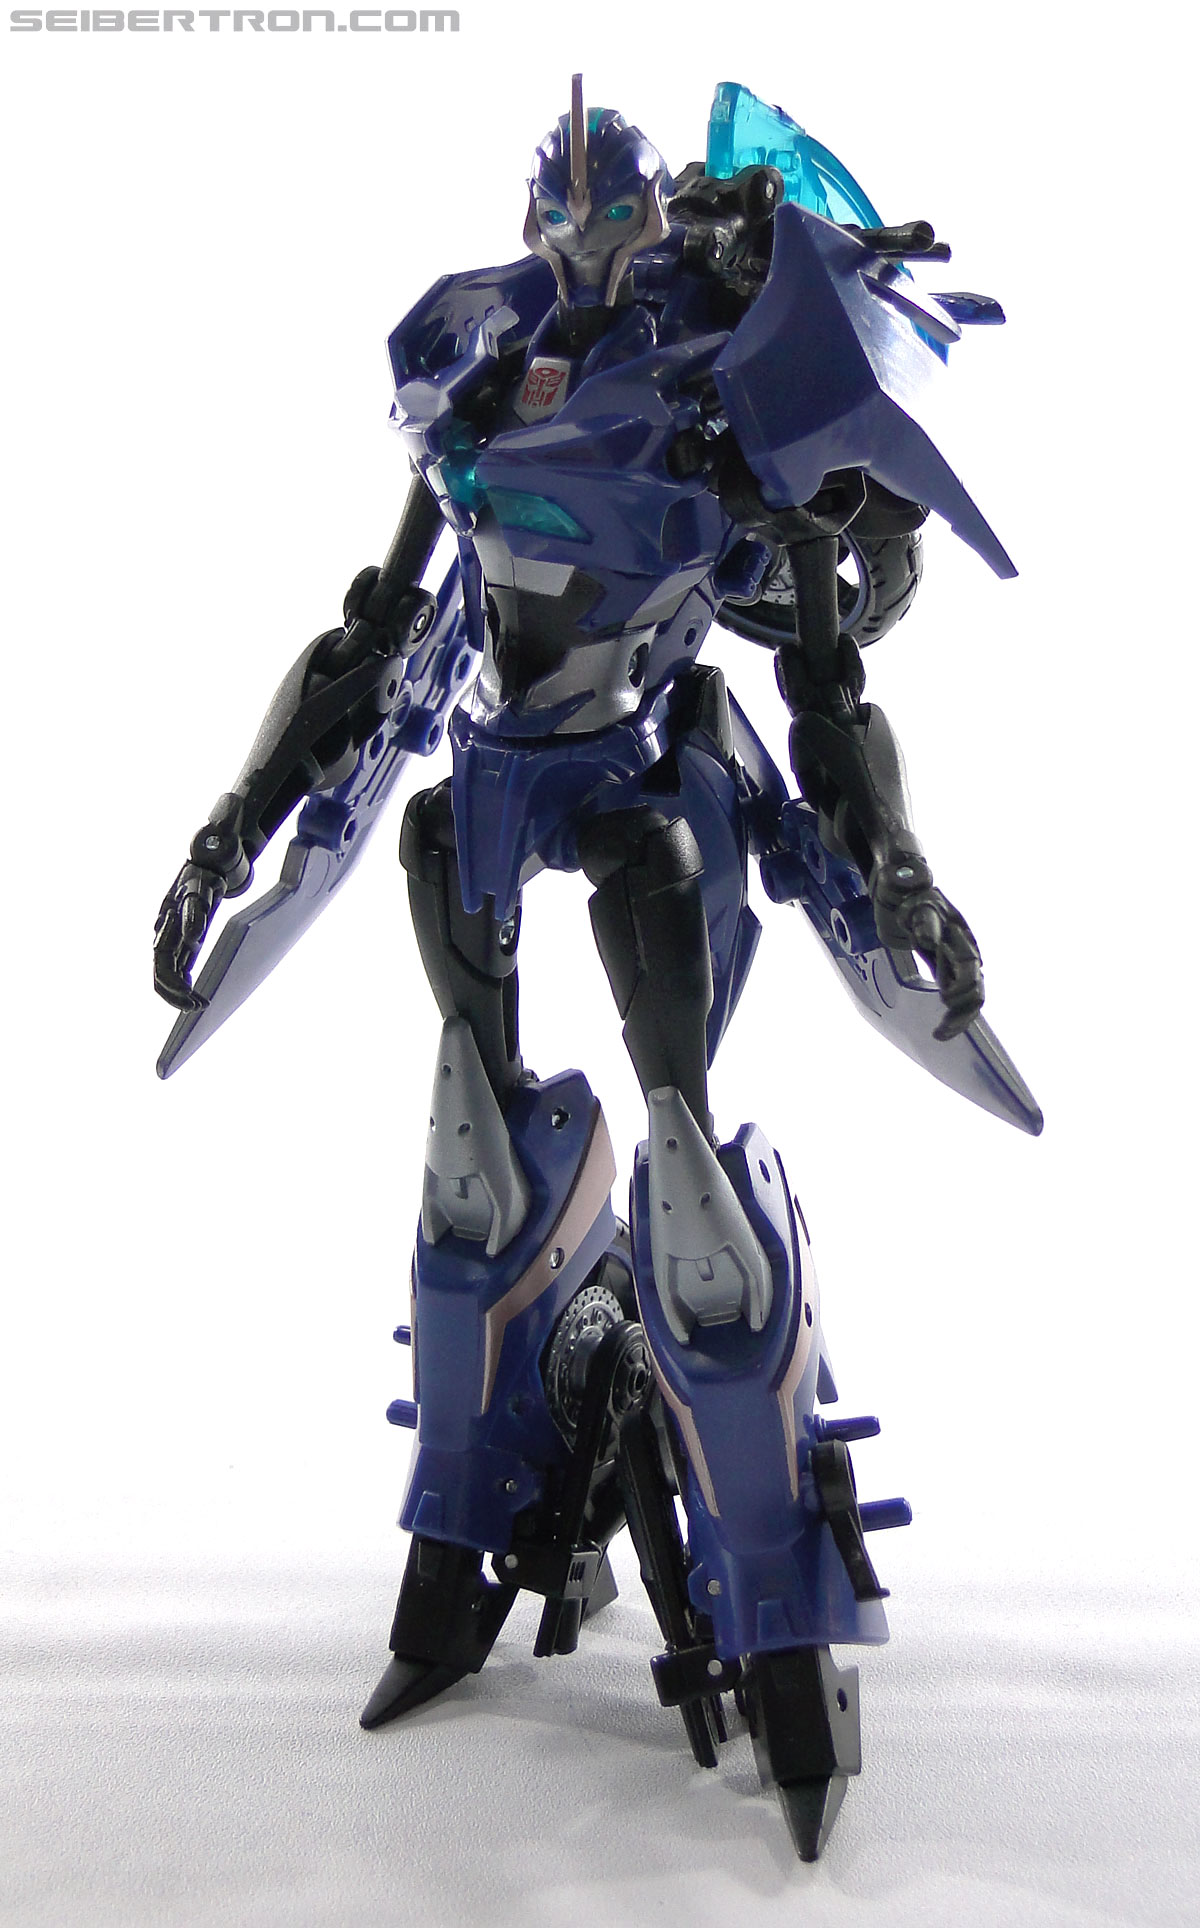 Transformers Prime: First Edition Arcee (Image #104 of 129)